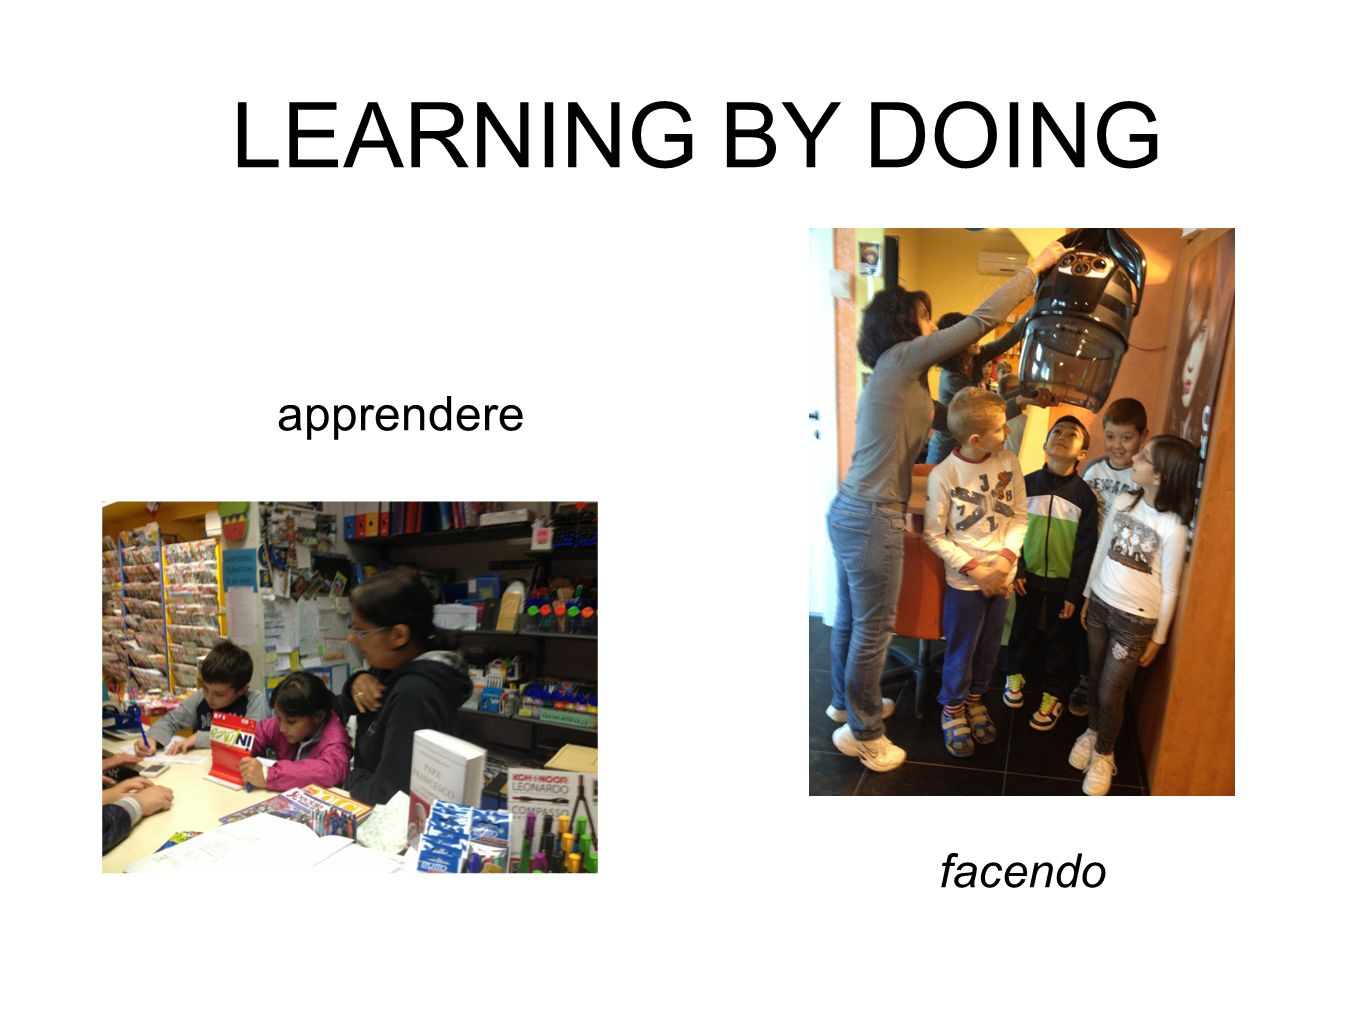 LEARNING BY DOING apprendere facendo